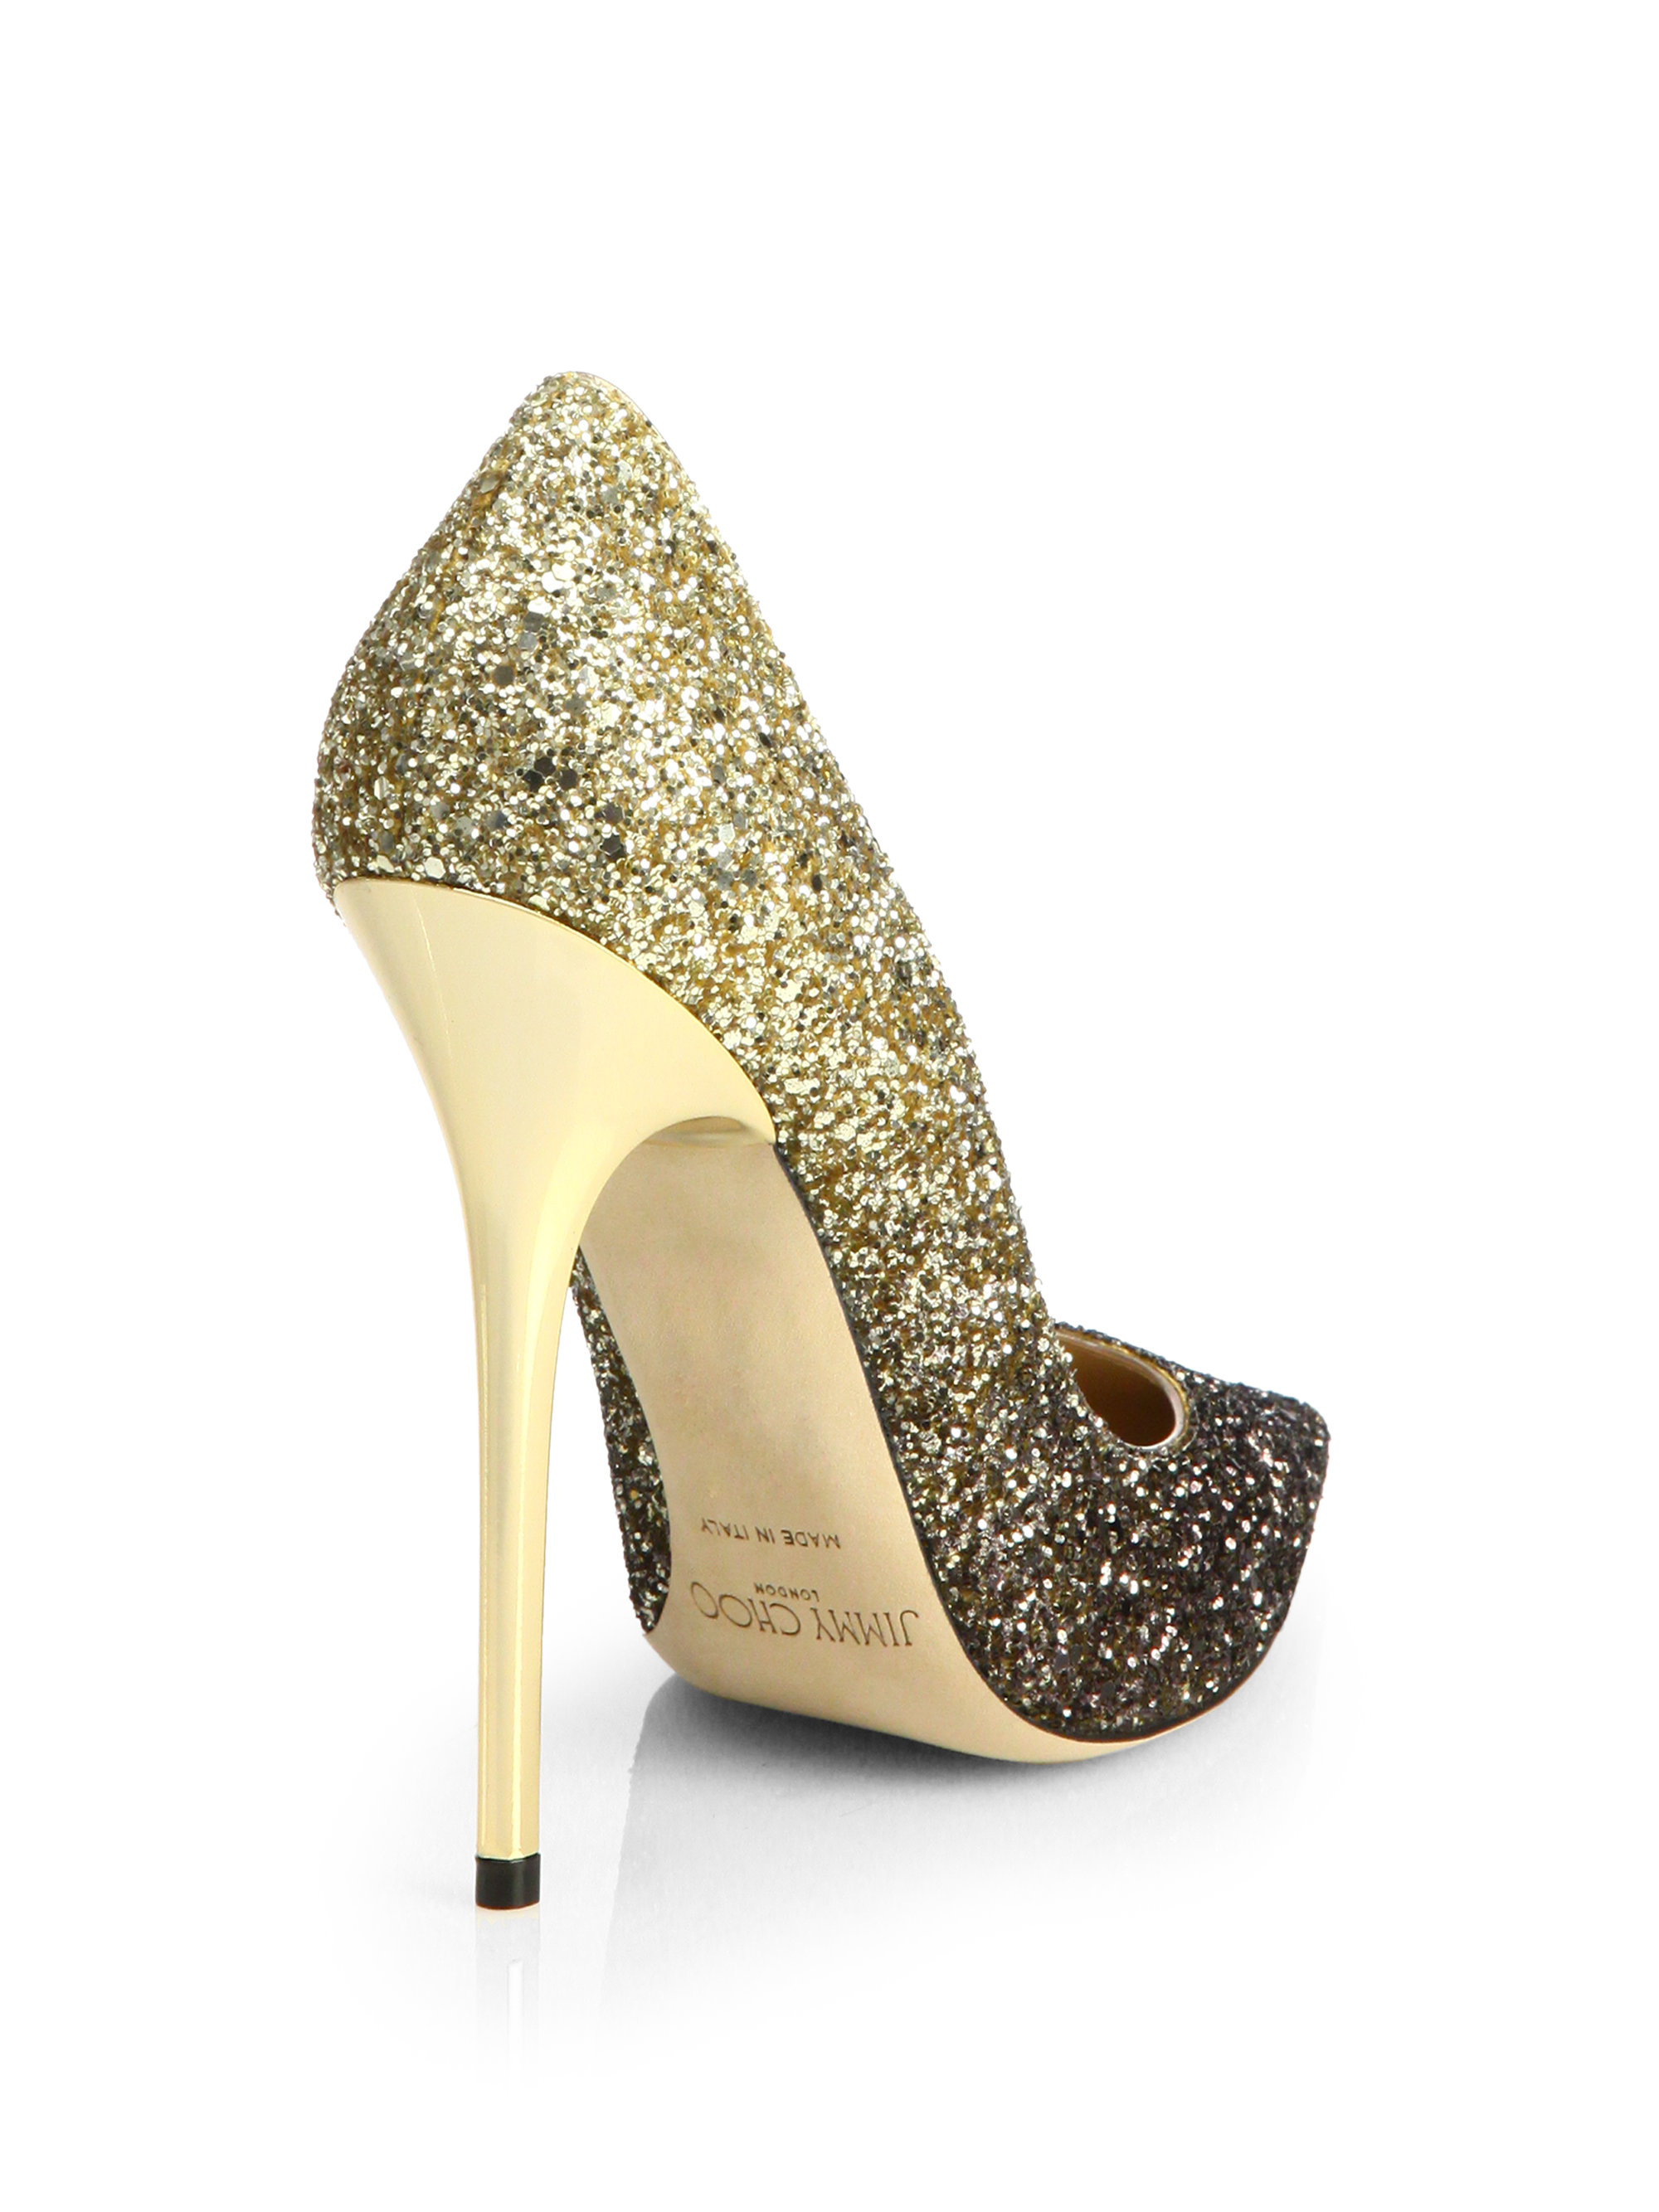 24a2d1ae397 ... release date lyst jimmy choo anouk 120 glitter degrade pumps in  metallic c21cf 2fcdf